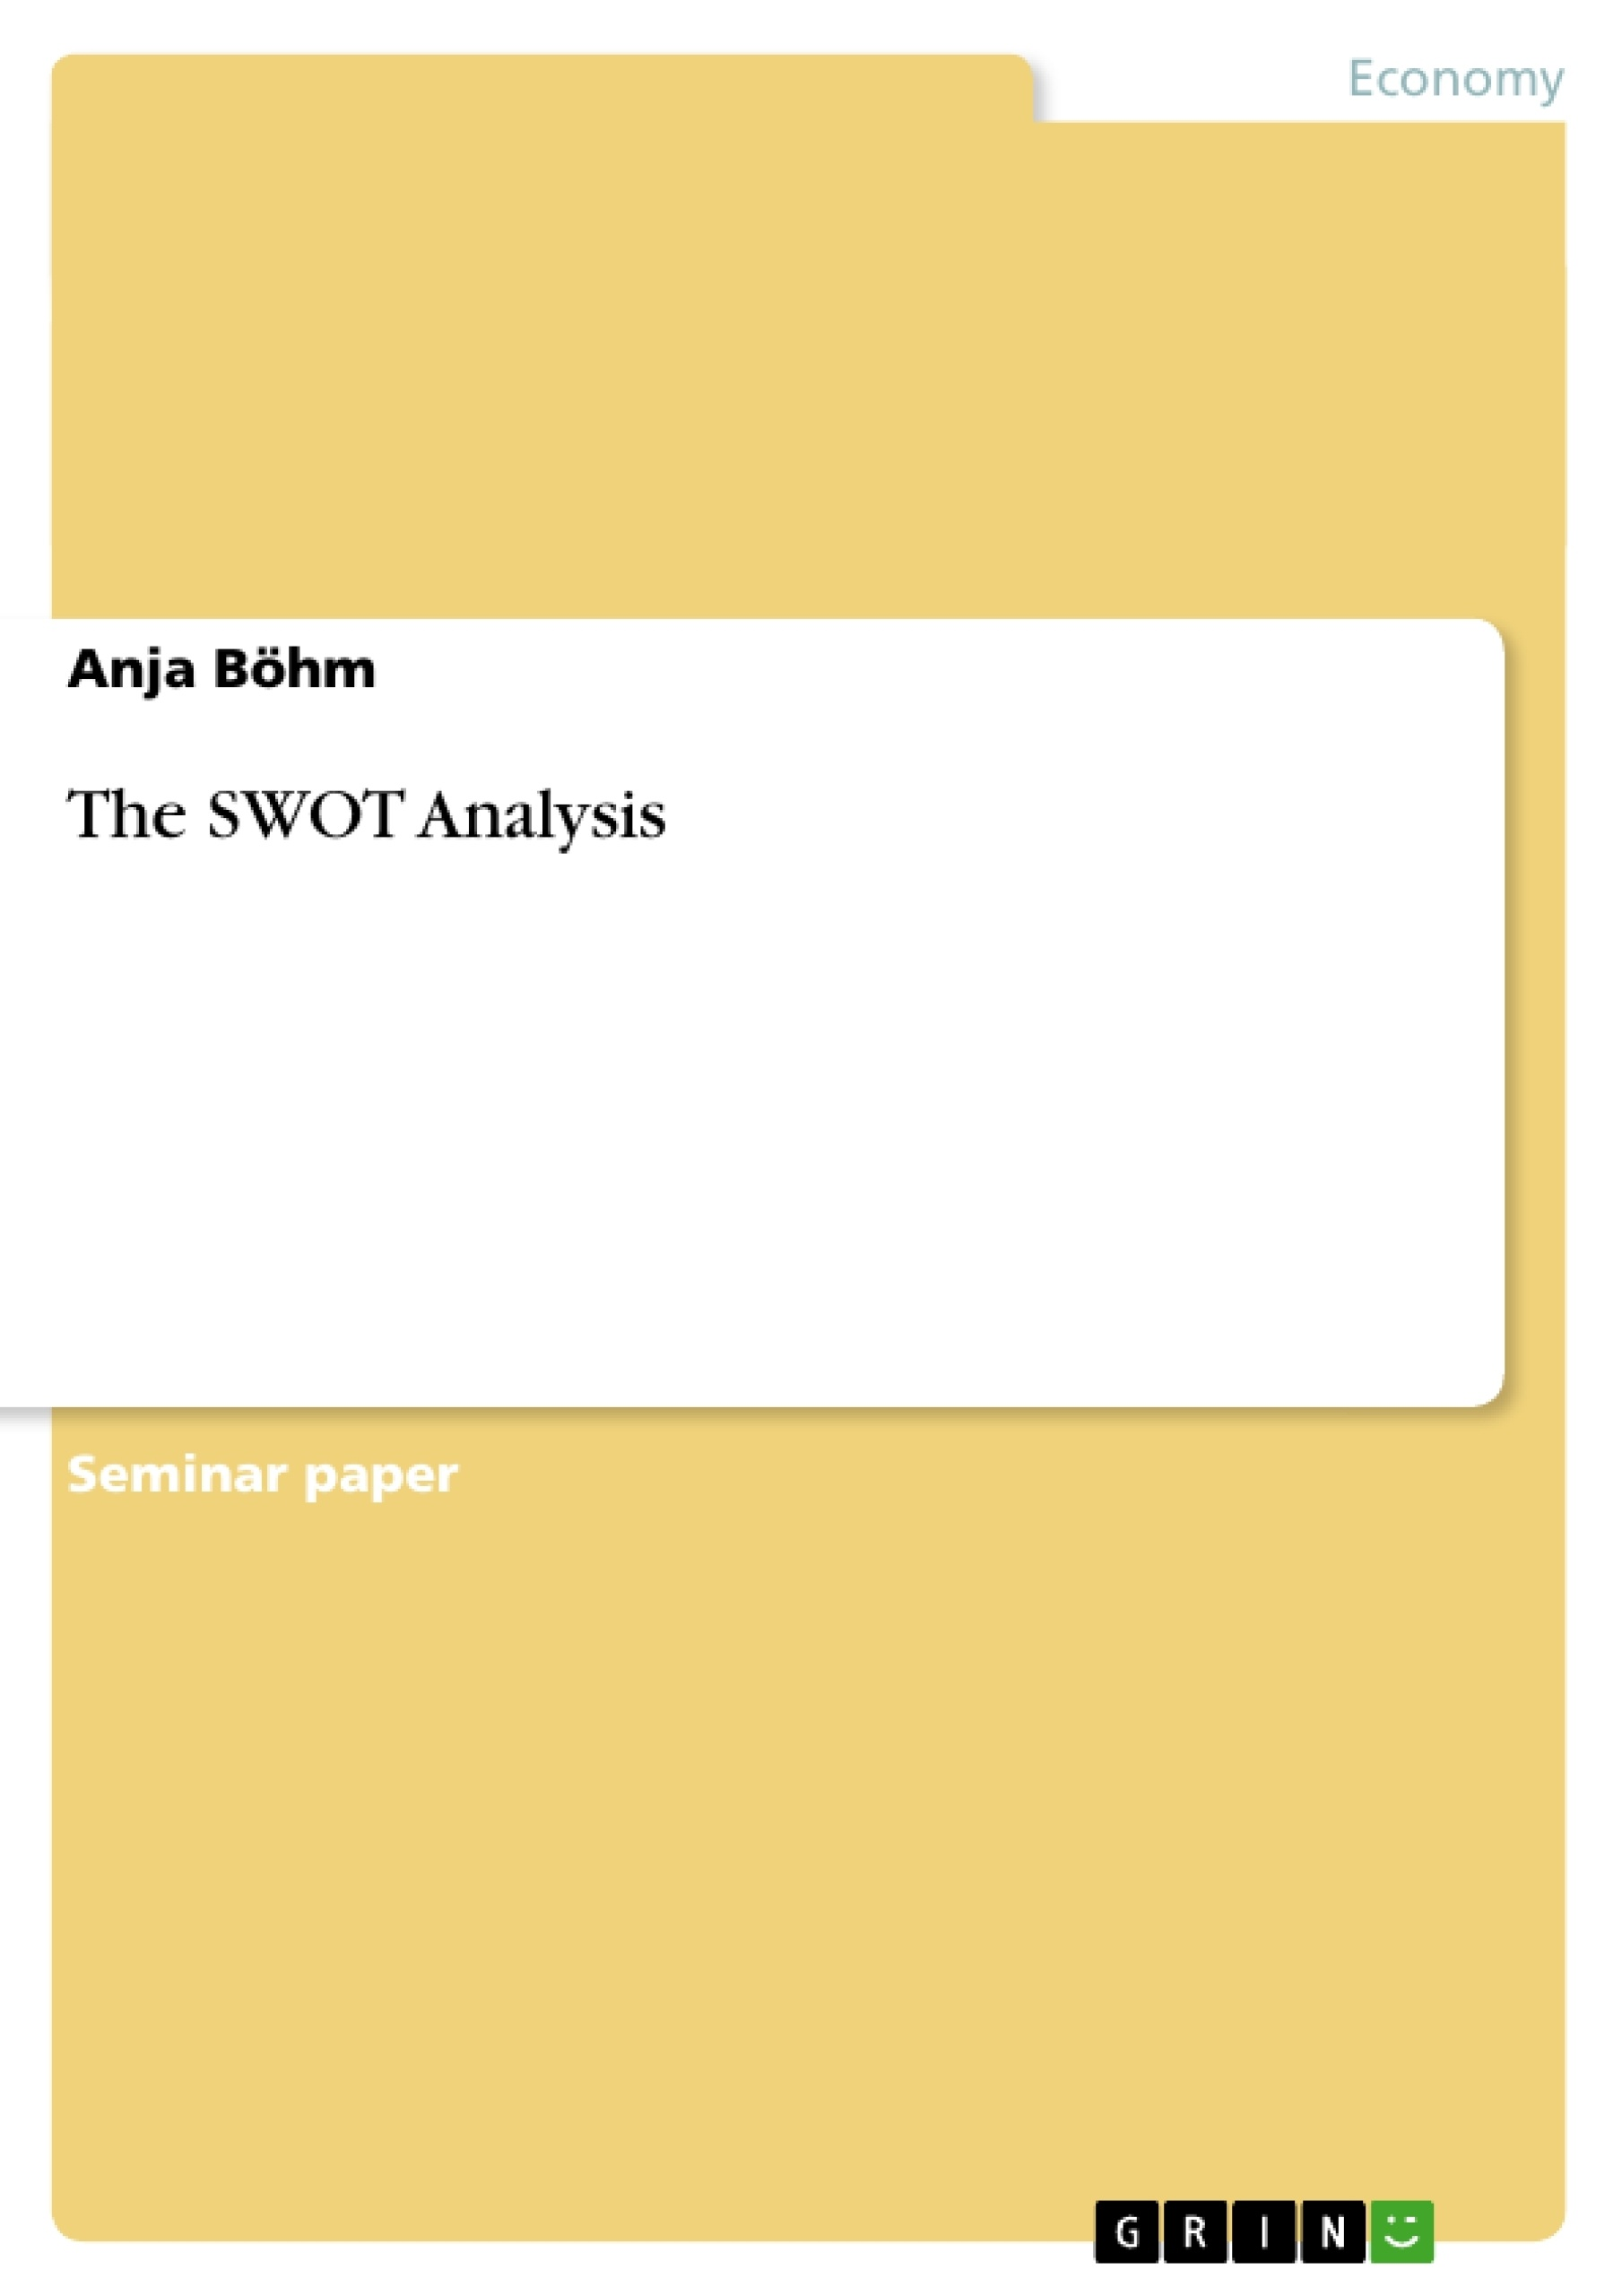 Title: The SWOT Analysis